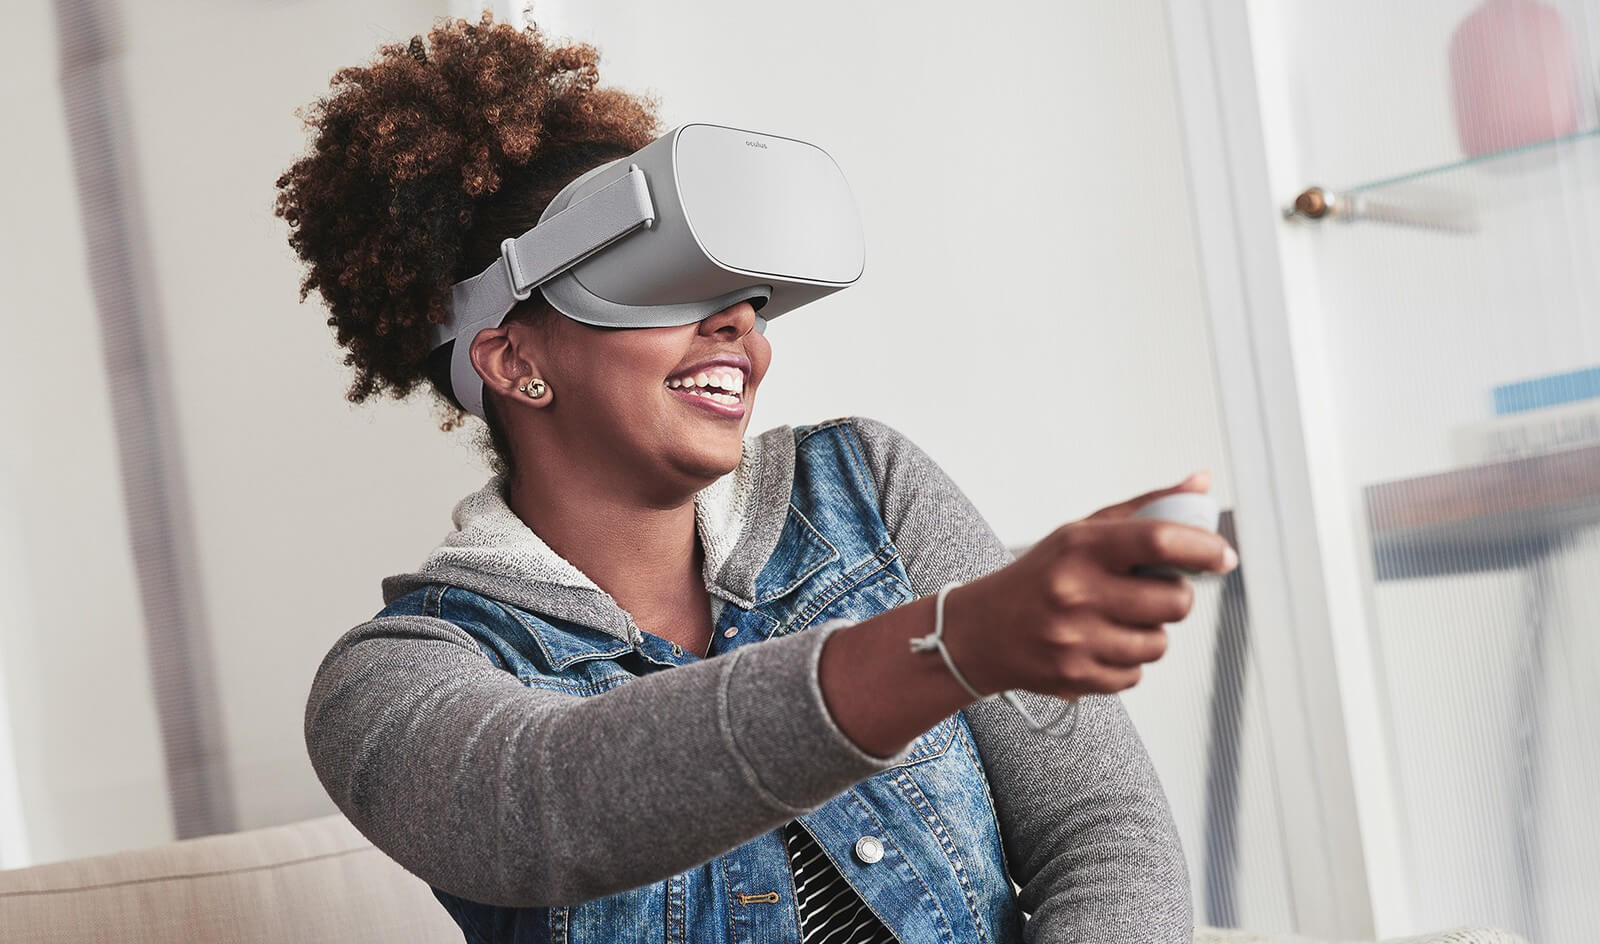 Leaked Oculus Go packaging suggests over 1,000 VR apps and movies will be available at launch